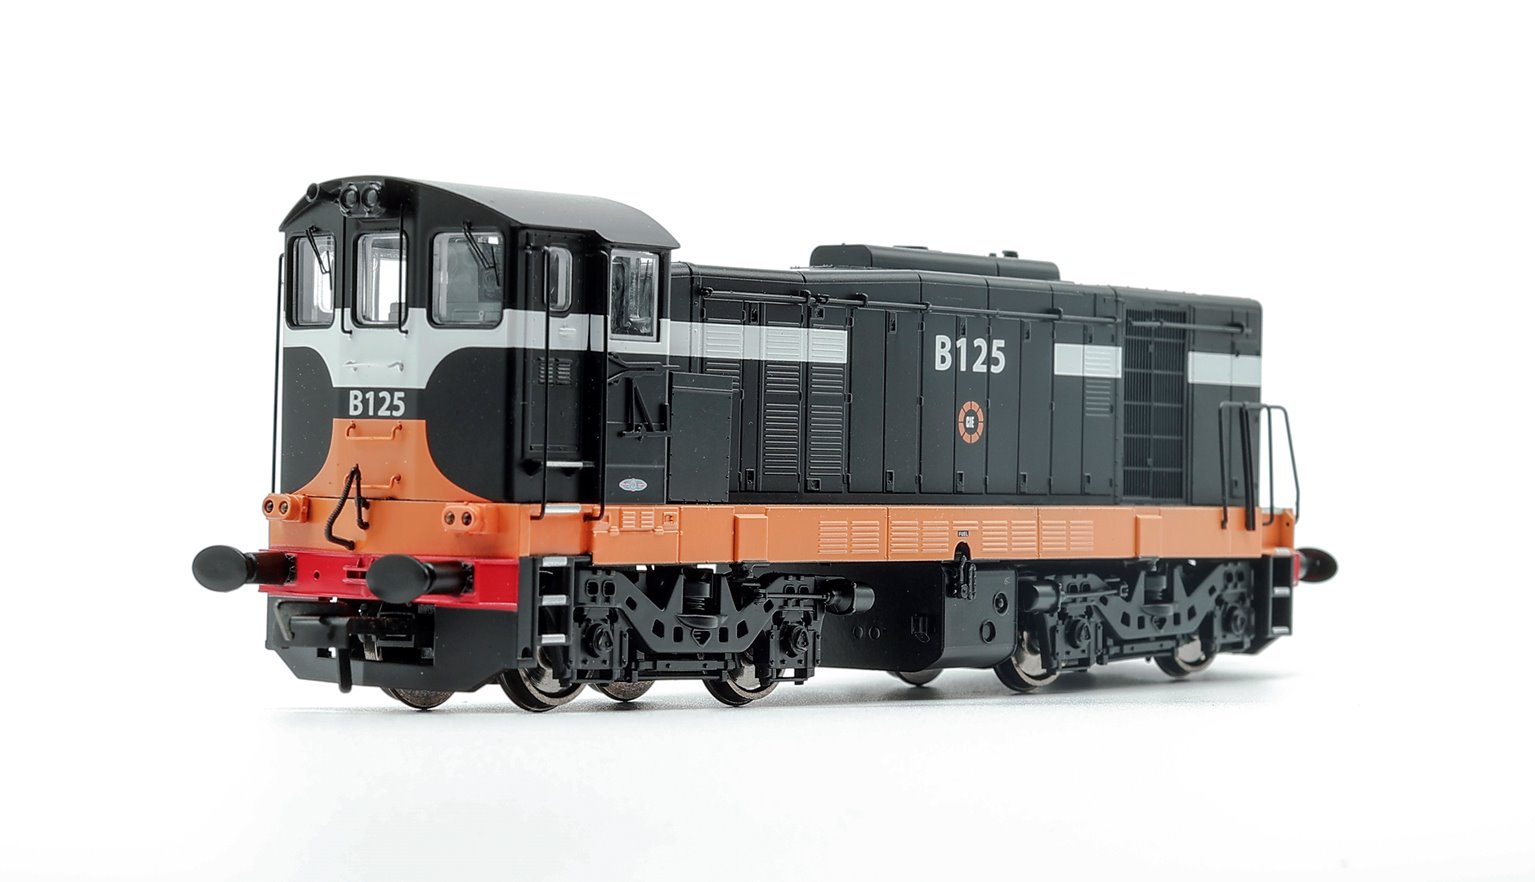 MM0125 Class 121 B125 in CIE Black and Tan Livery